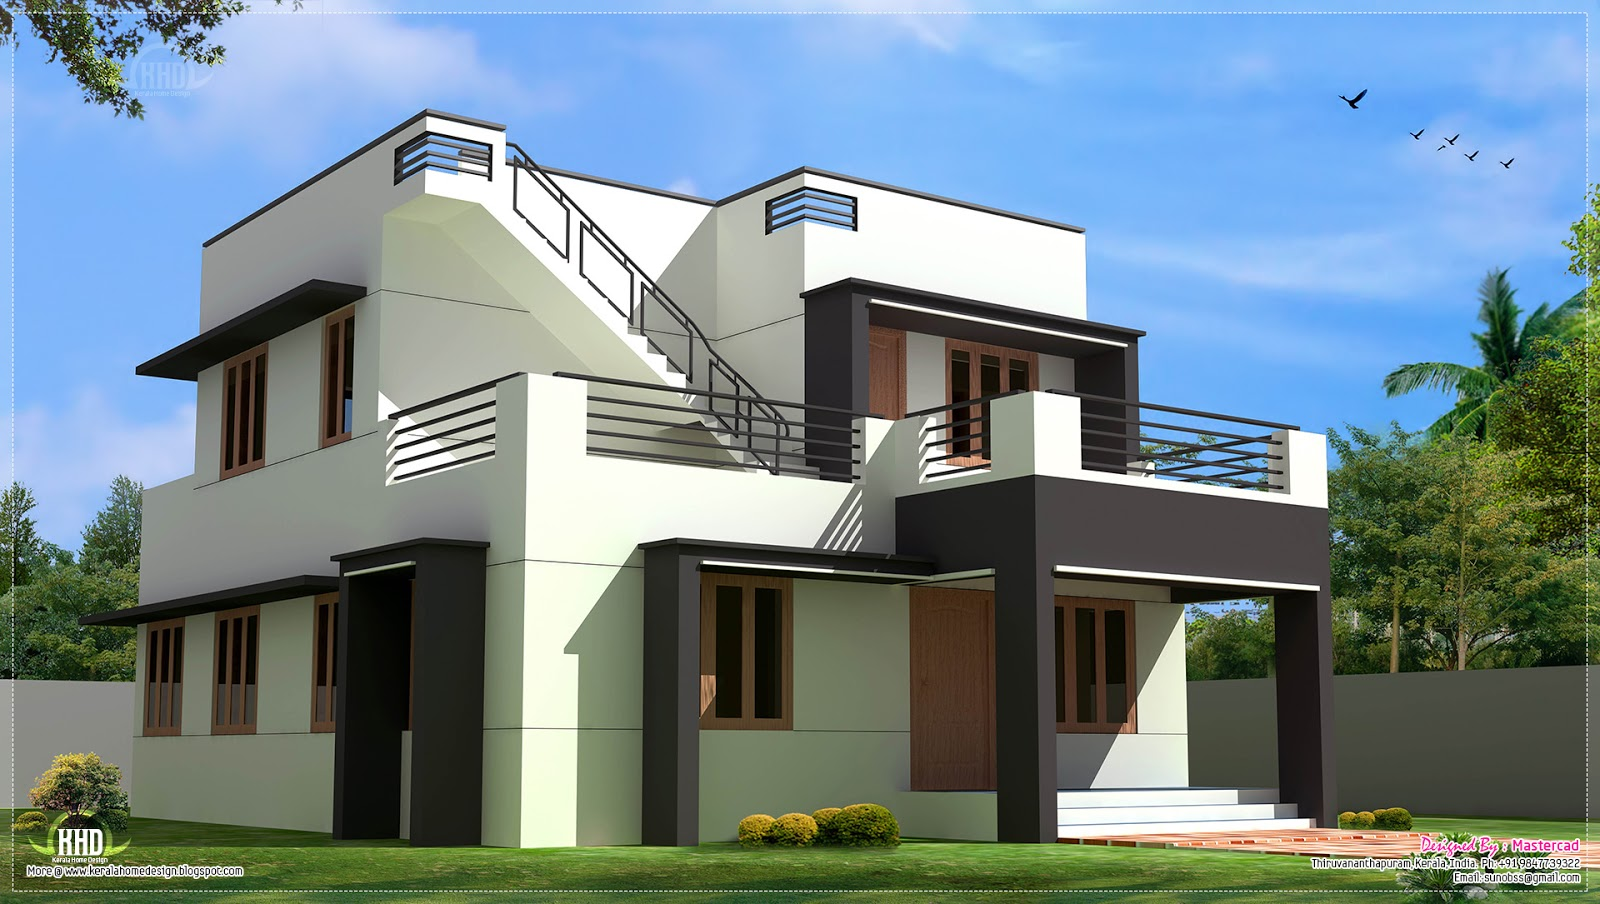 Magnificent Modern House Design 1600 x 904 · 272 kB · jpeg